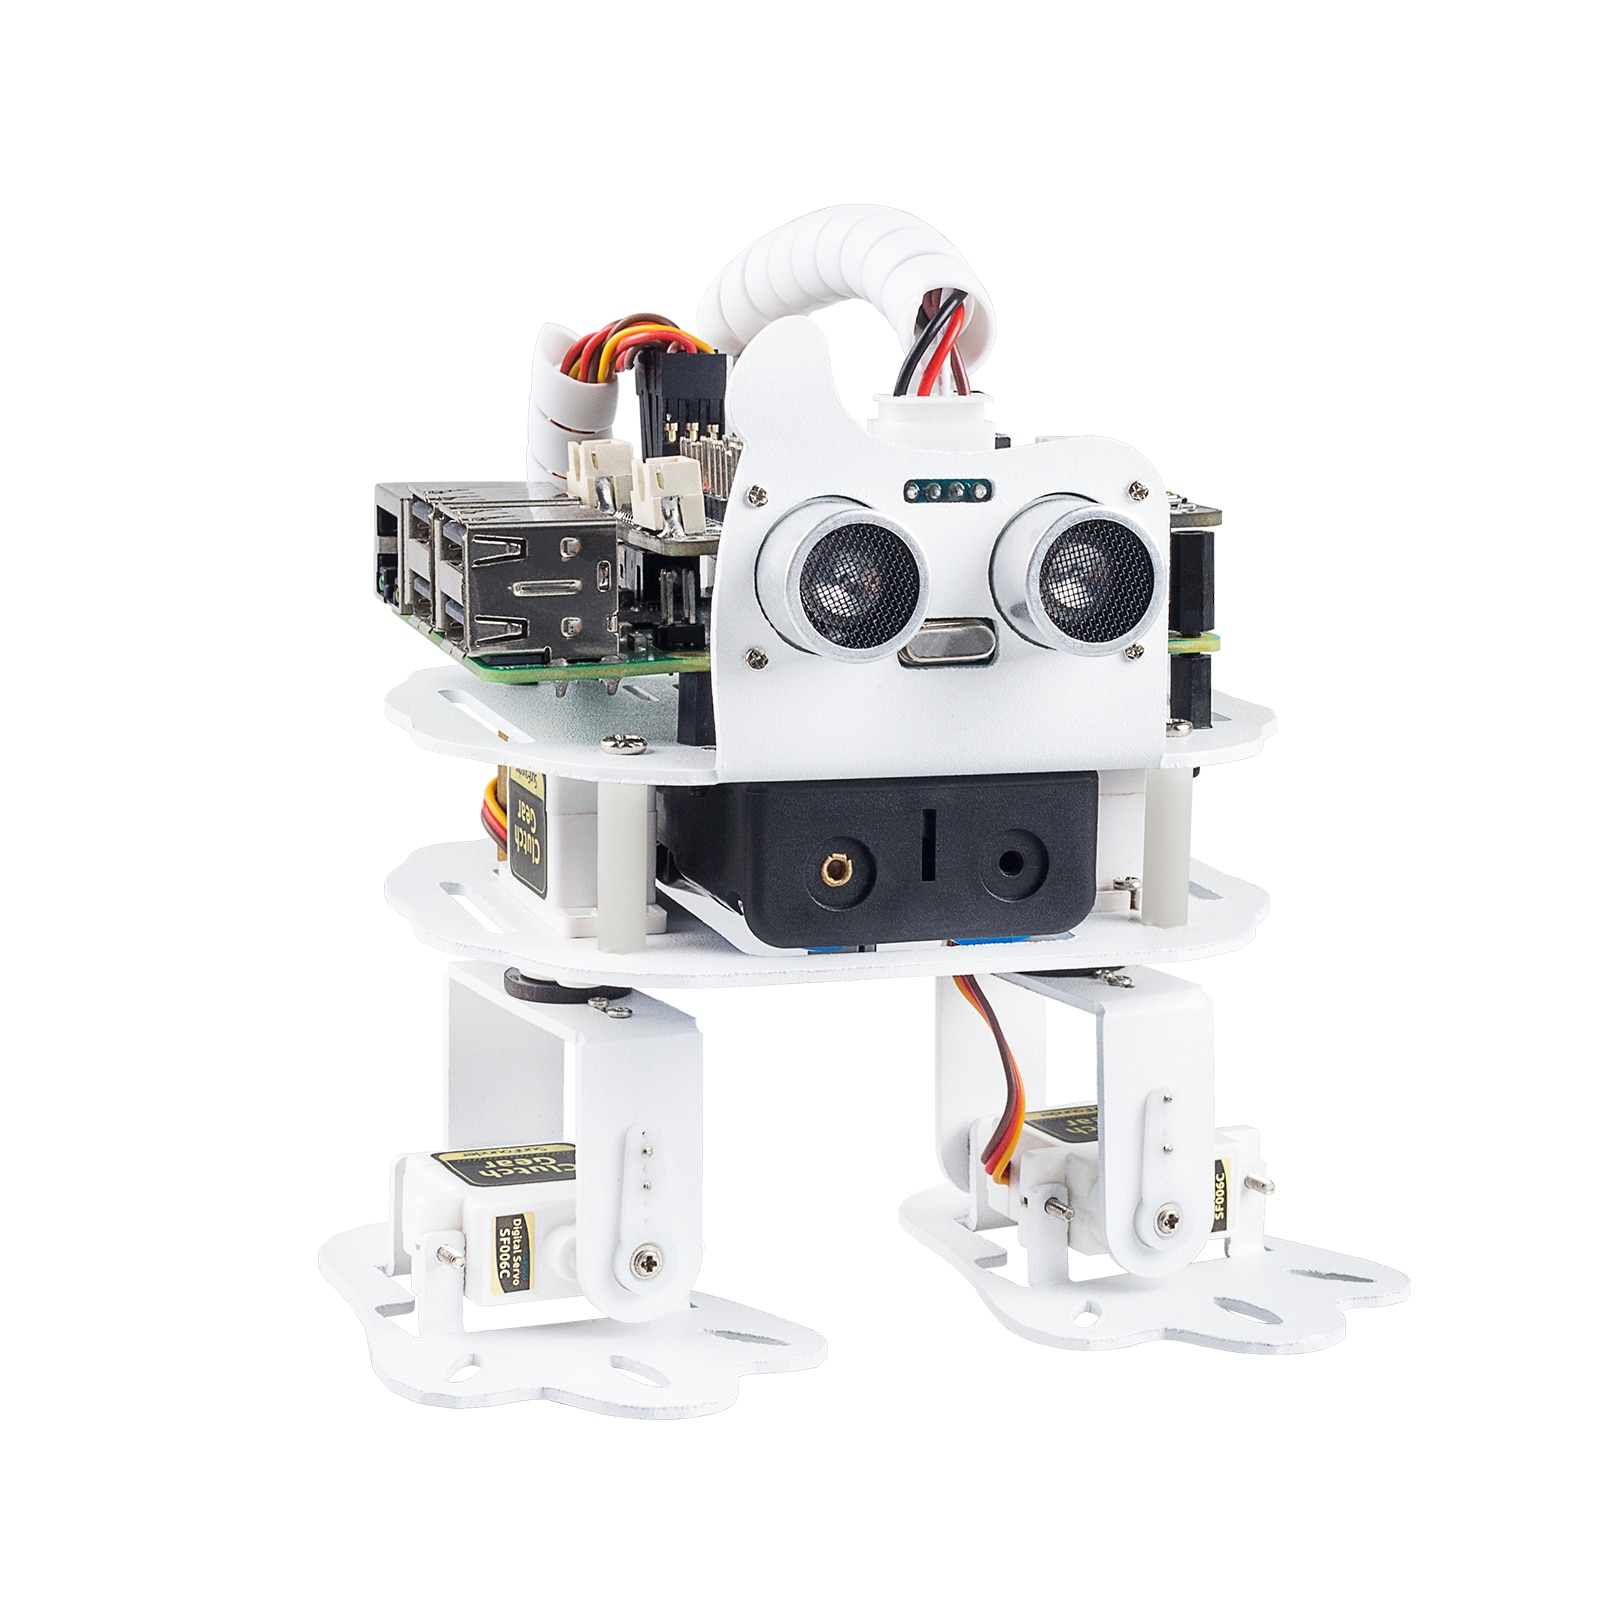 SunFounder PiSloth AI Programmable Robot Kit for Raspberry Pi, Dancing, Obstacle Avoidance, Object Following, TTS, Sound Effects